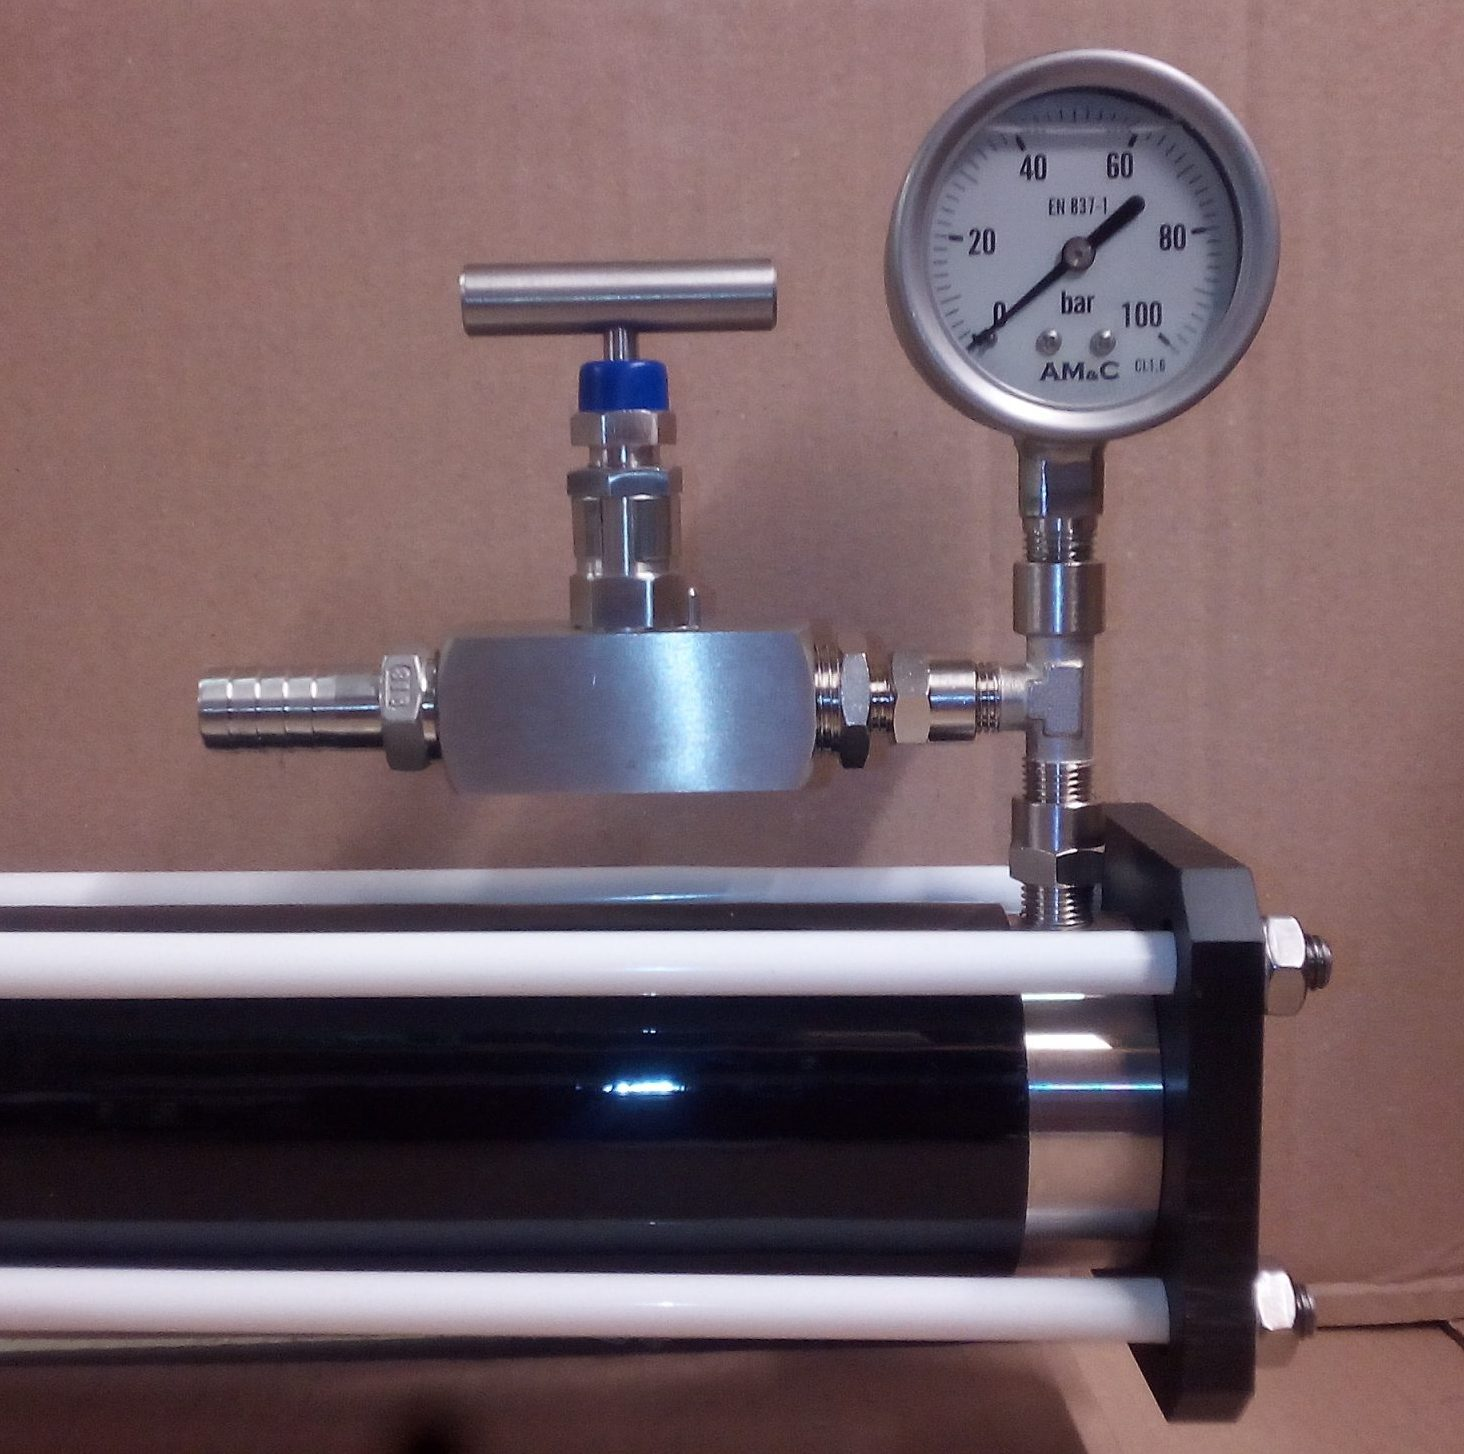 High Pressure Regulation Assembly with 63 mm. diam. Gauge   BLUE GOLD Watermakers